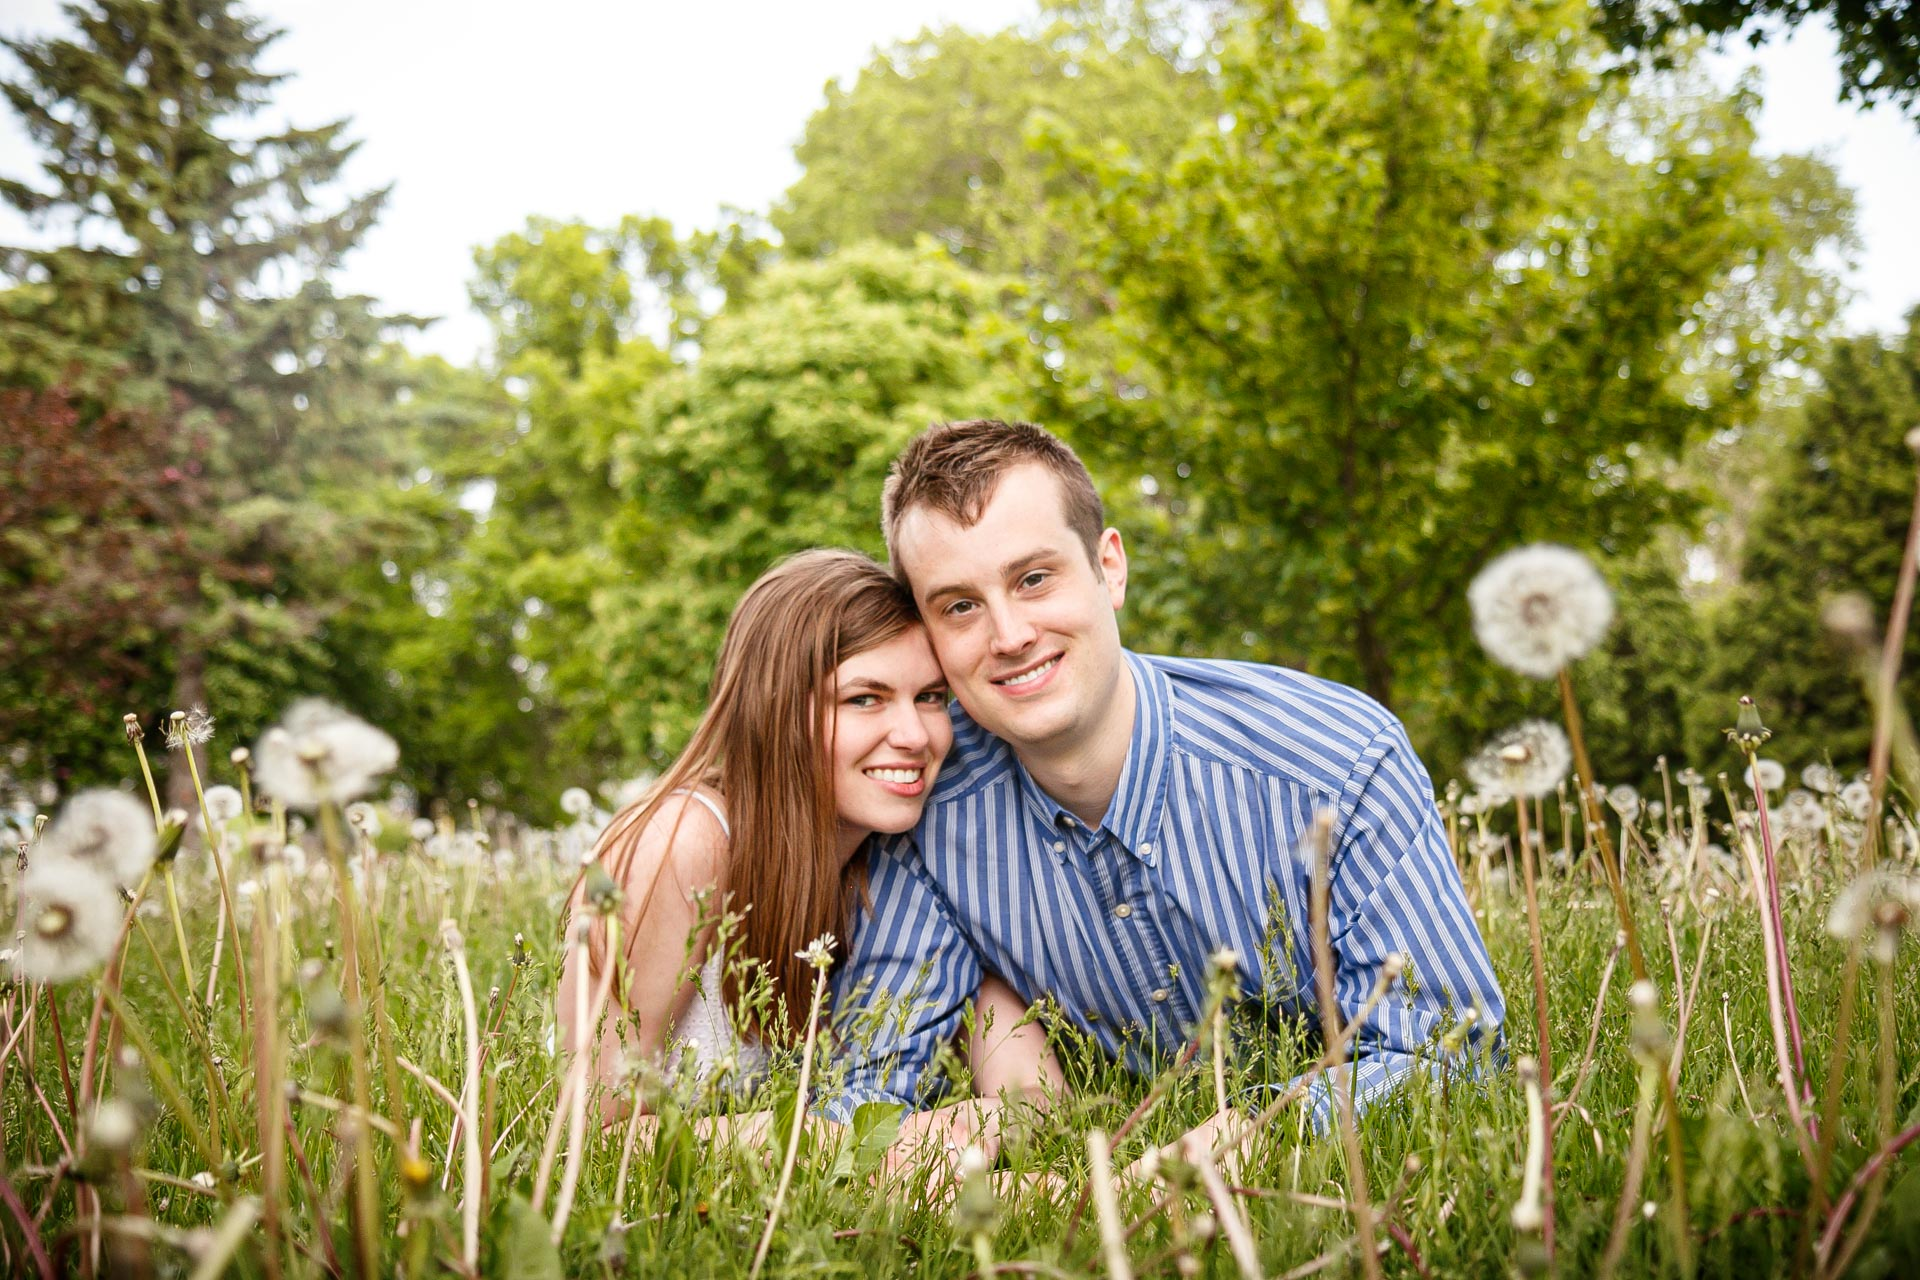 engagement-photos-voyageur-park-de-pere-wisconsin-wi-adam-shea-photography-adam-shea-photography-green-bay-appleton-neenah-photographer-19.jpg